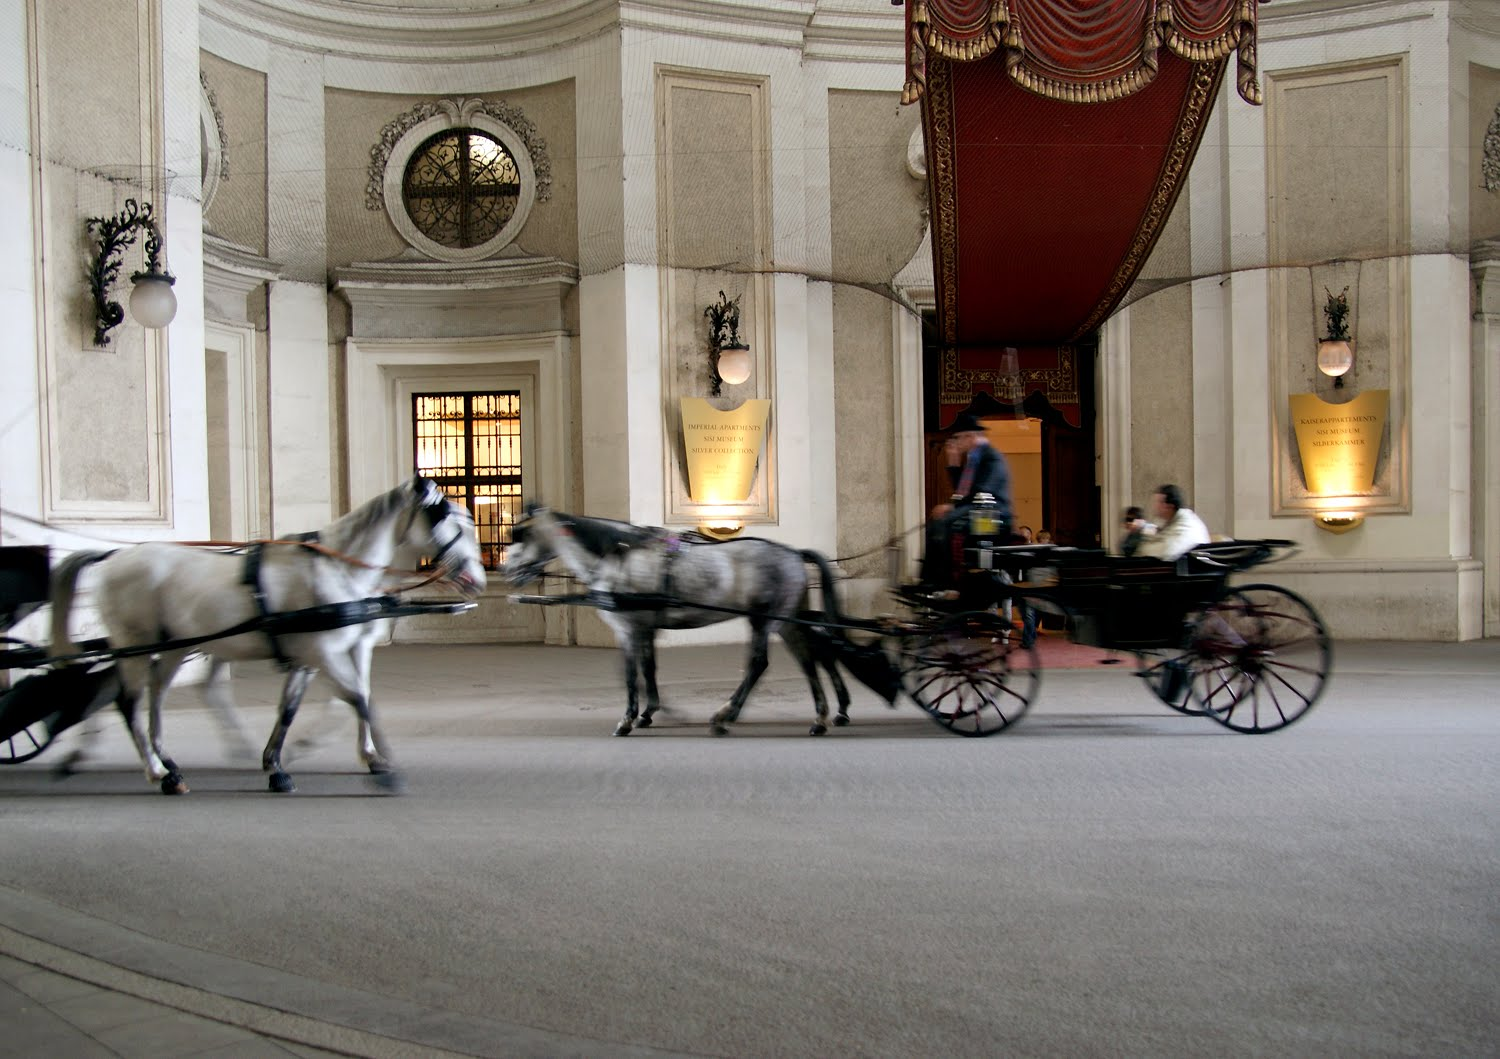 fastest ride in vienna - the horse carriage